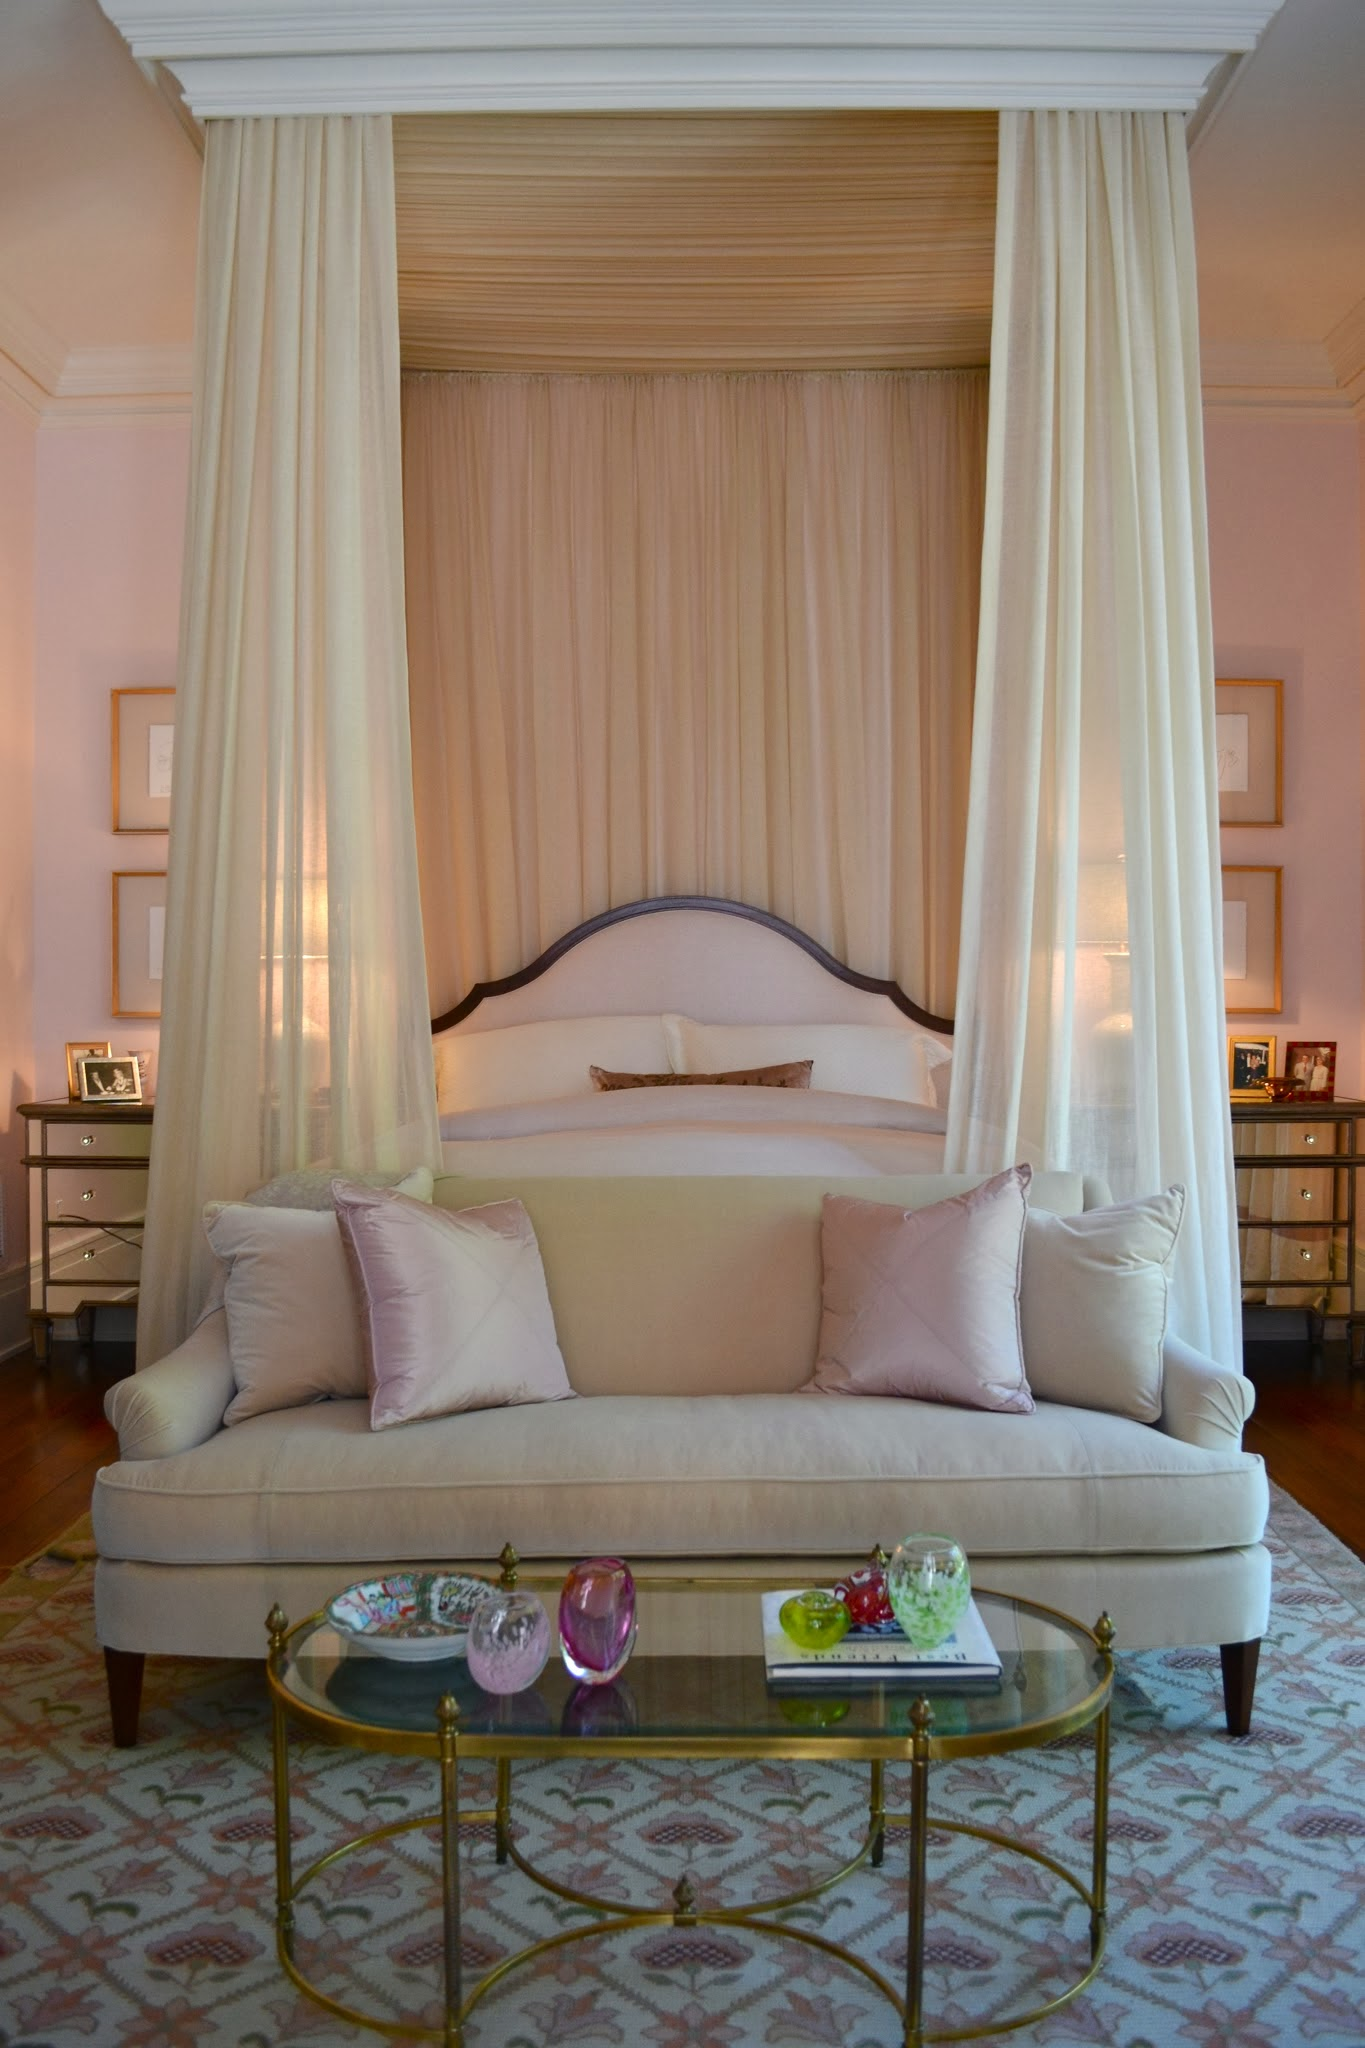 Canopy Beds With Curtains 15 canopy beds that will convince you to get one